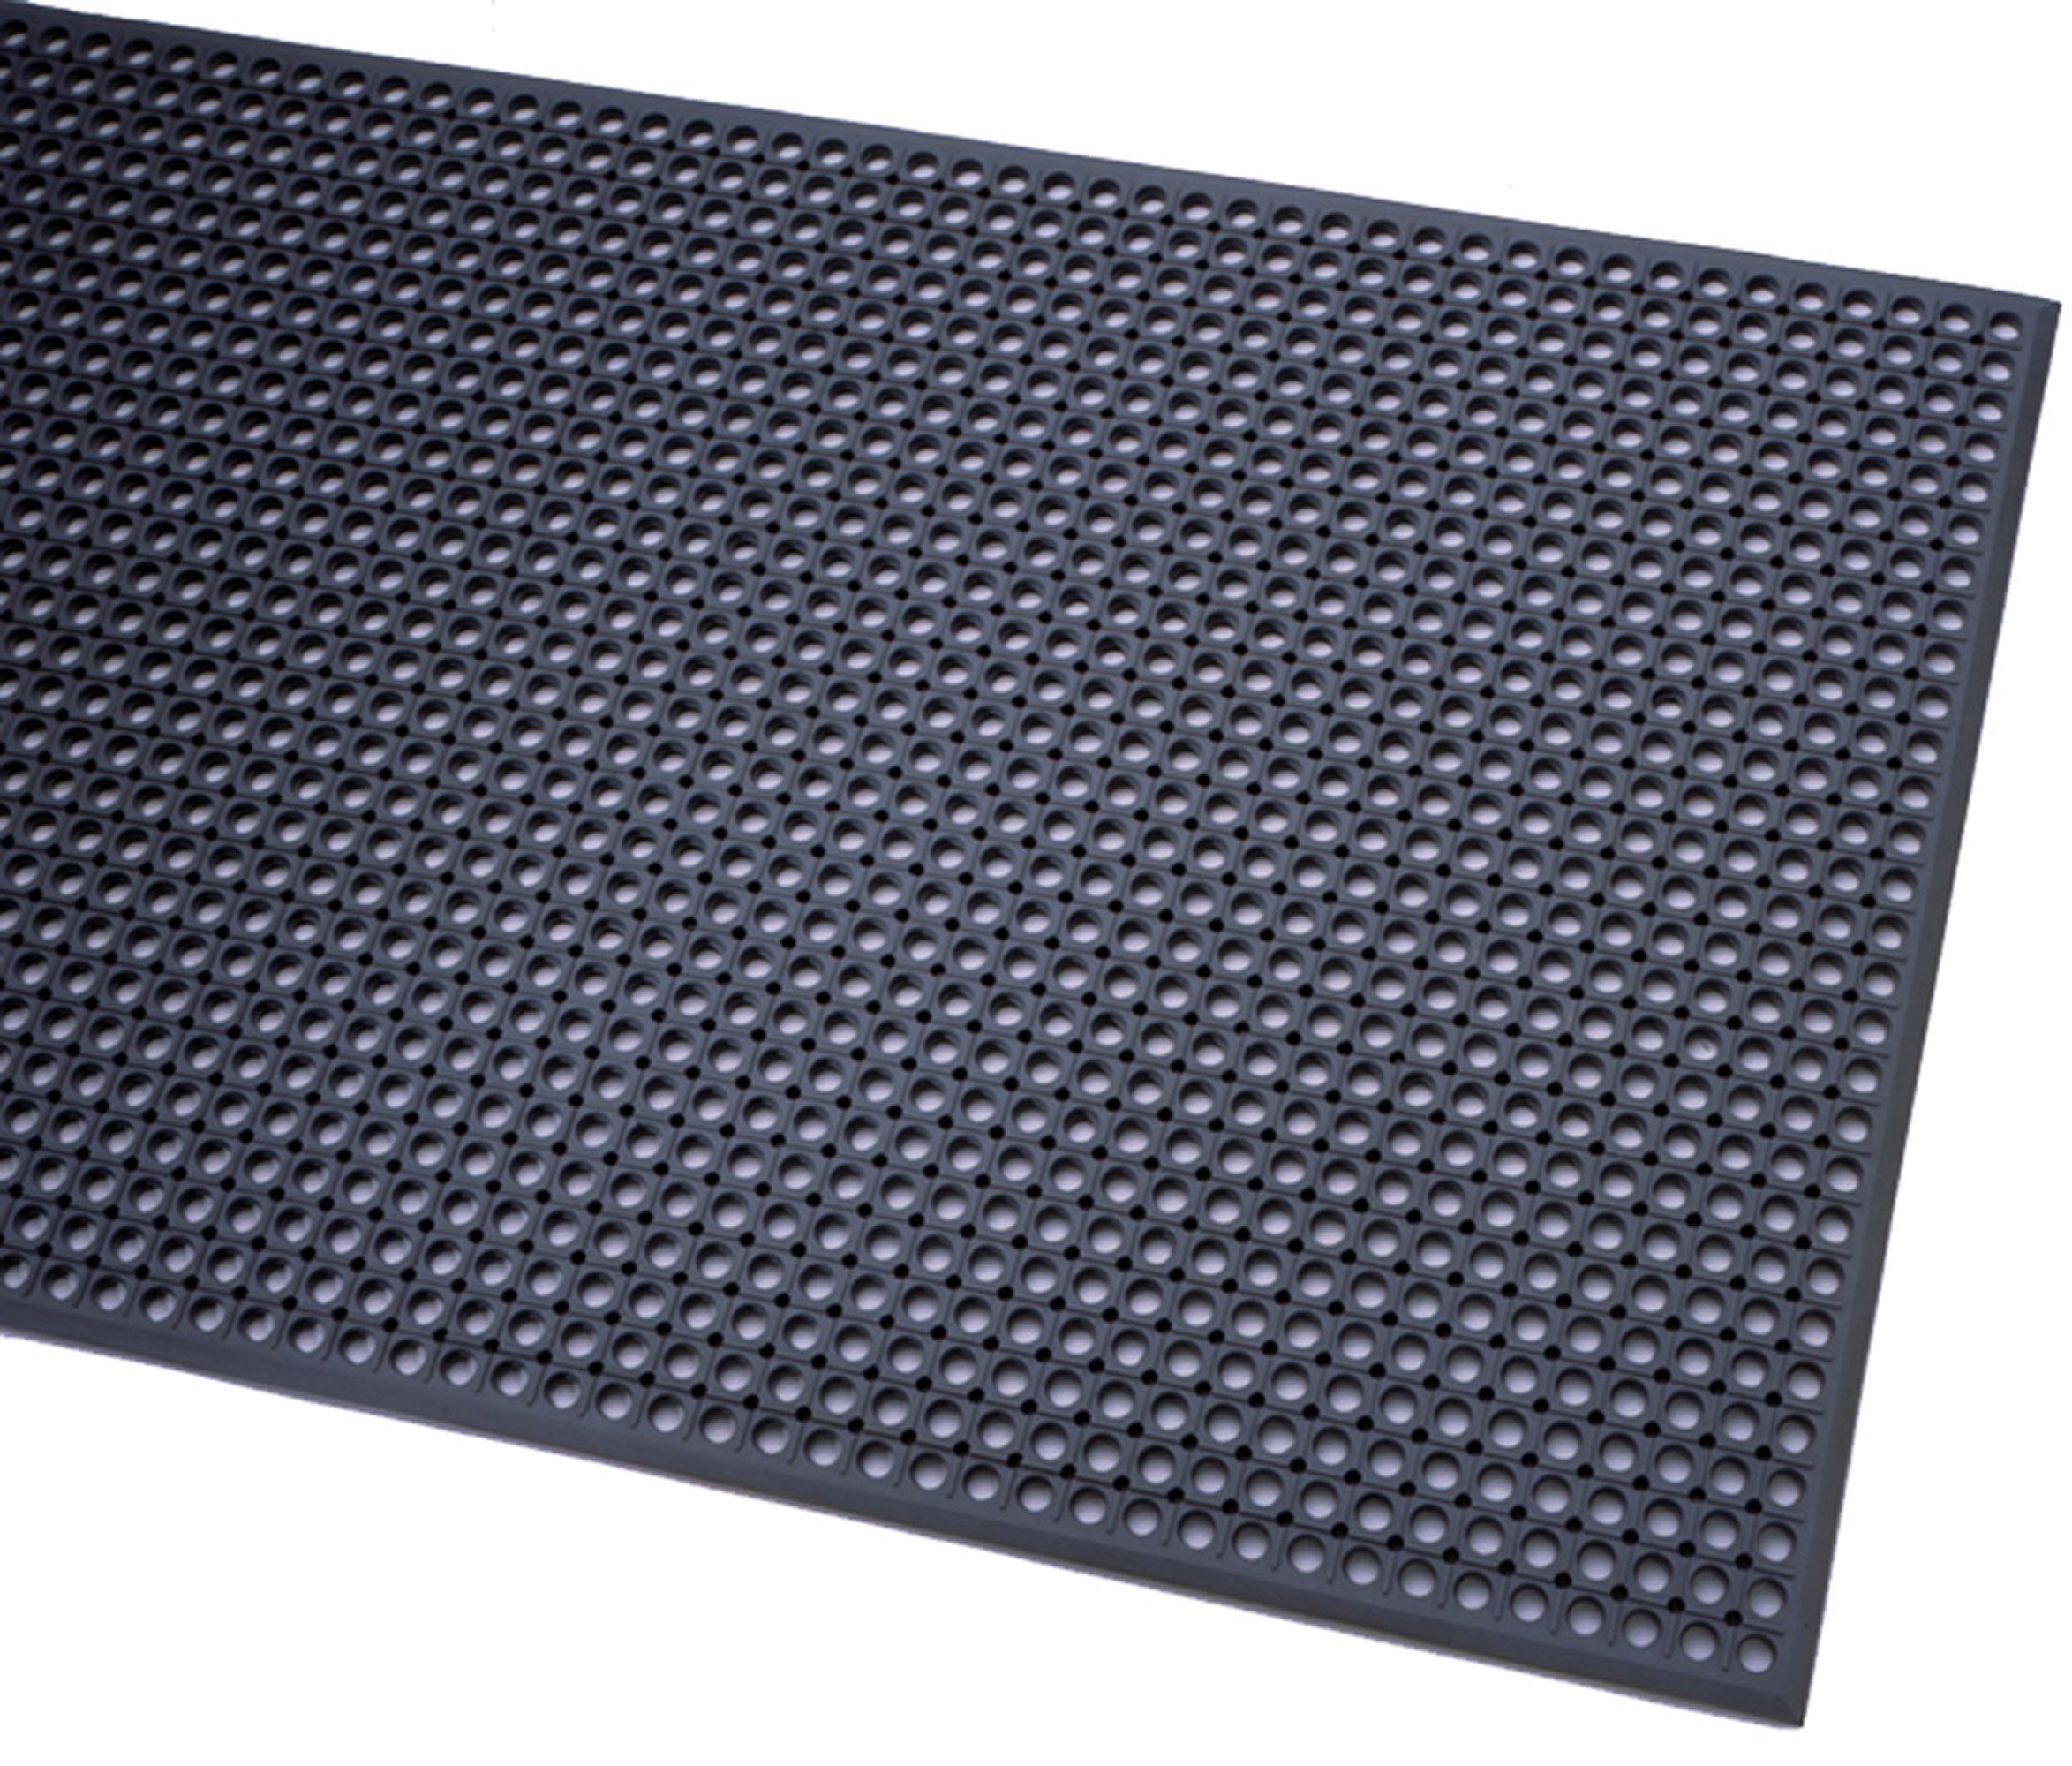 Durable Workstation Plus Rubber Anti-Fatigue Drainage Mat, For Wet Areas, 3' x 10', Black